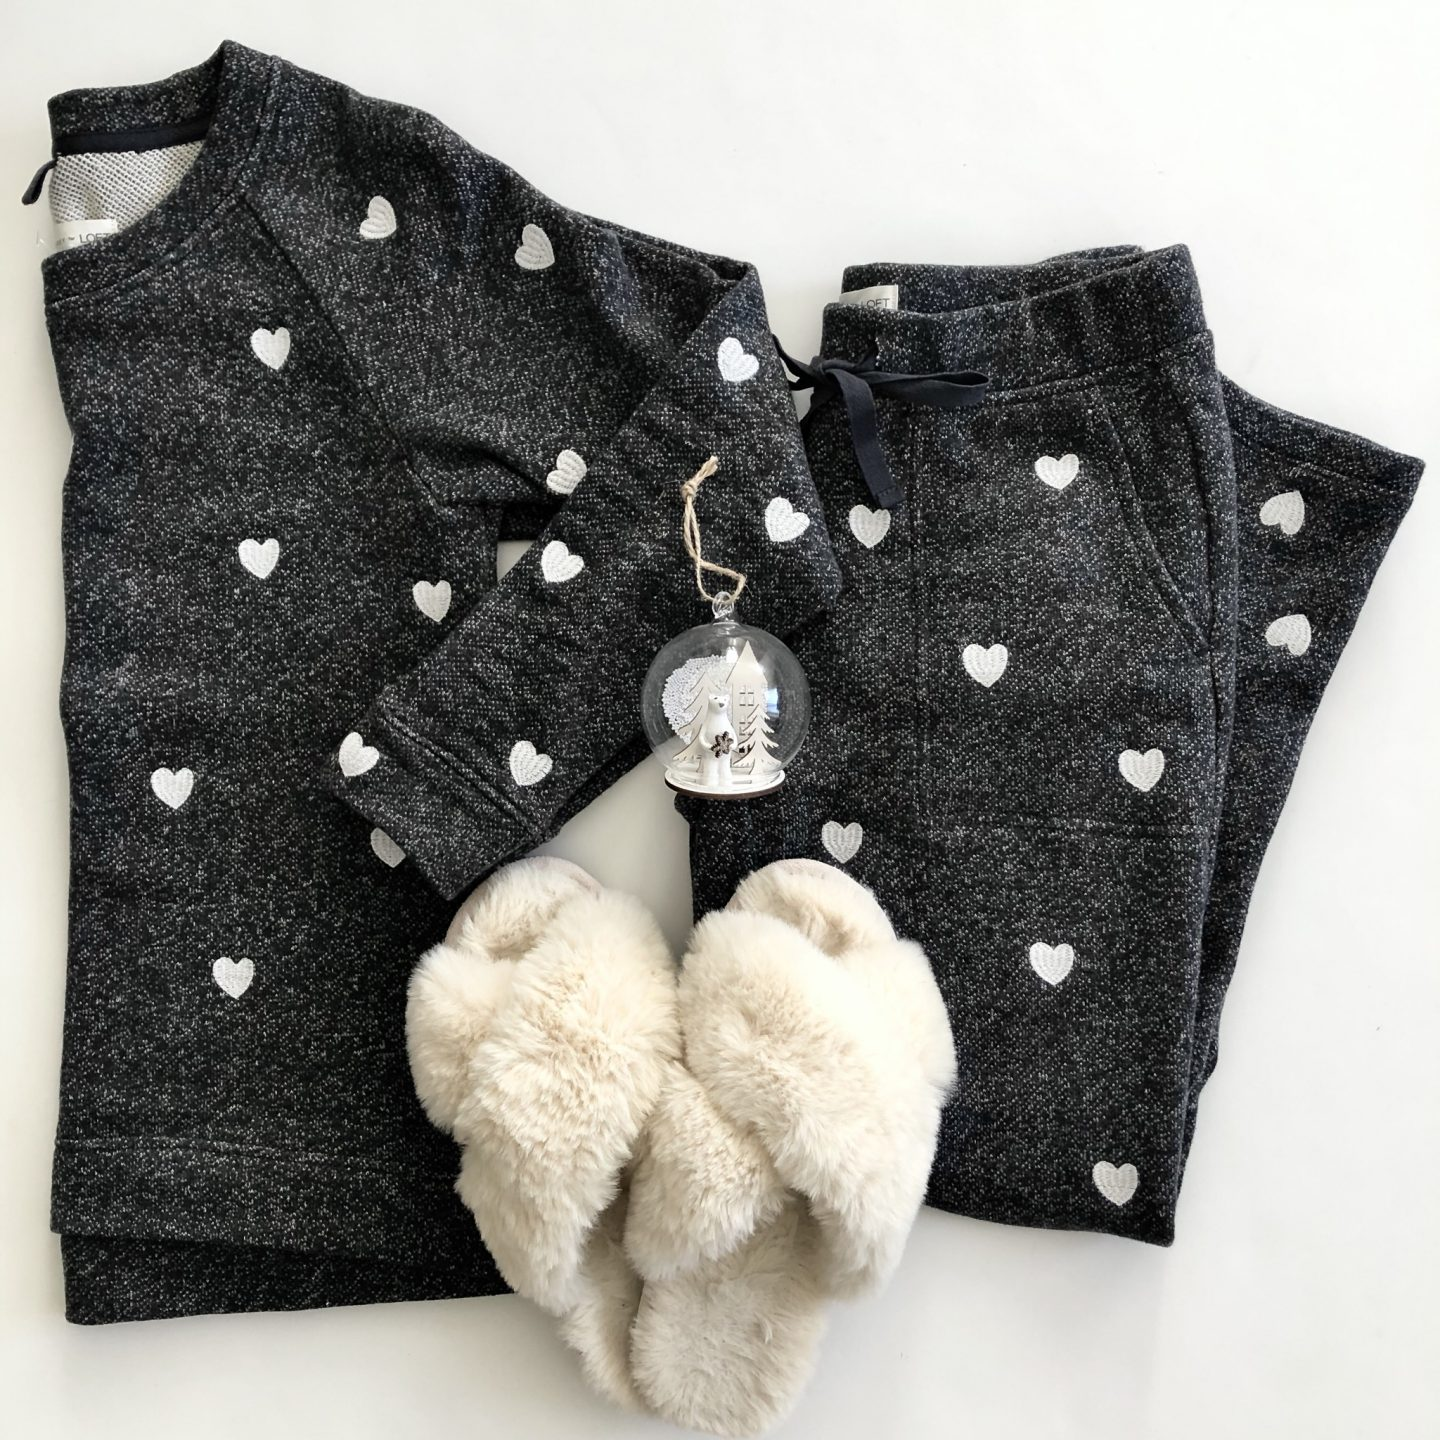 Lou & Grey Embroidered Heart Sweatshirt Set